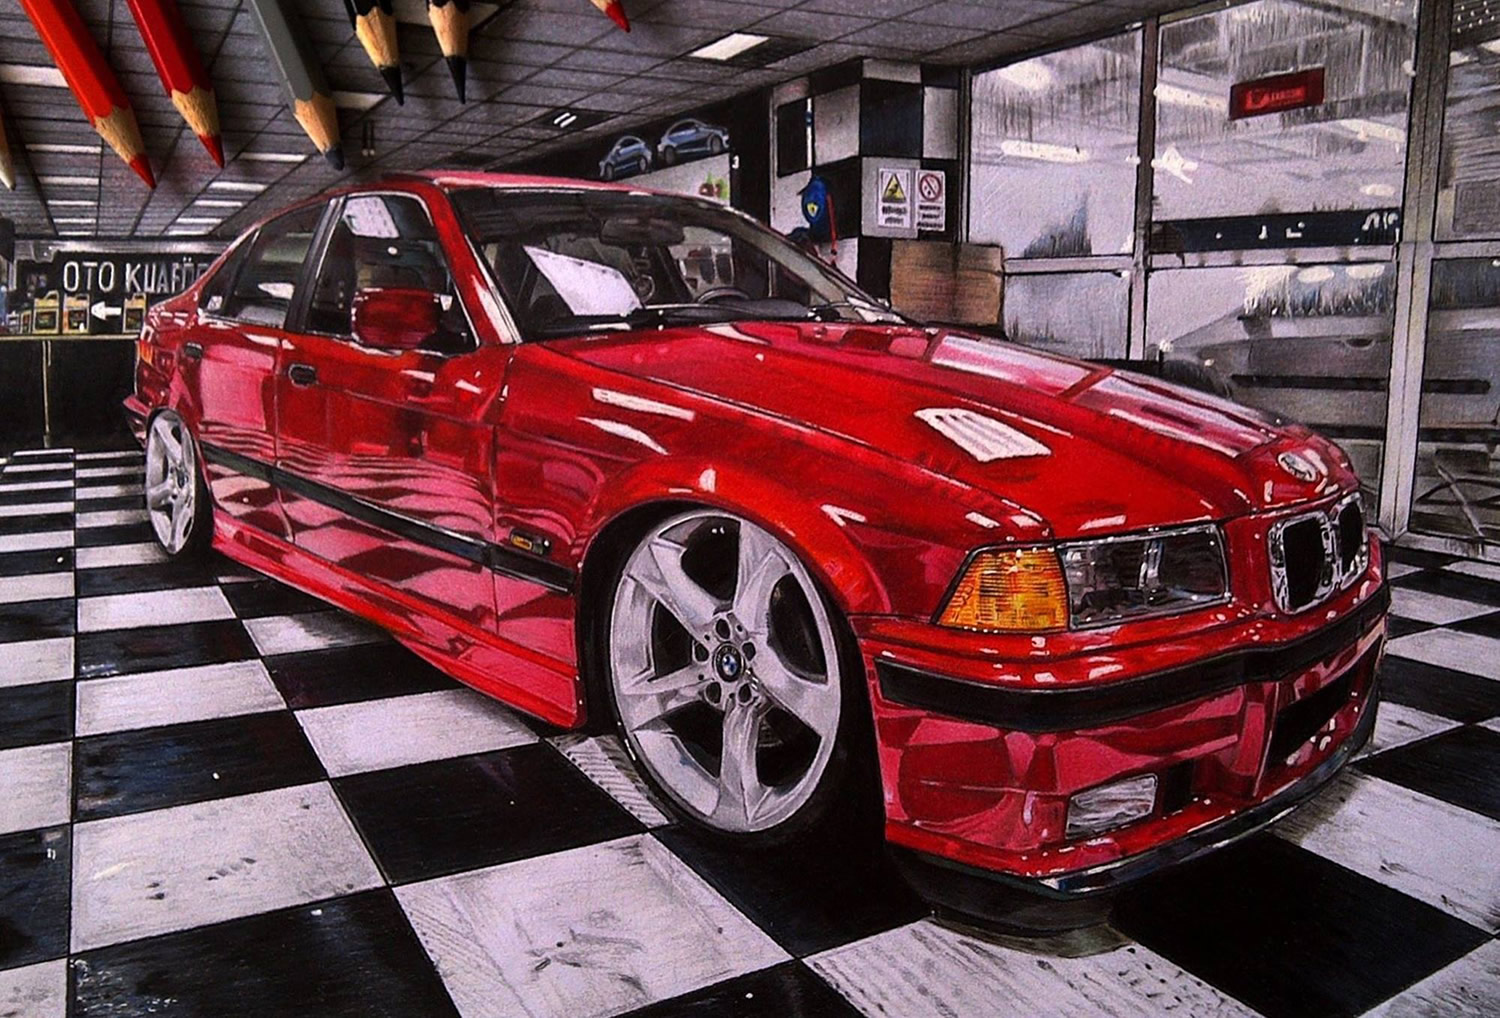 red car on checkered floor, drawing by dogukan ulas